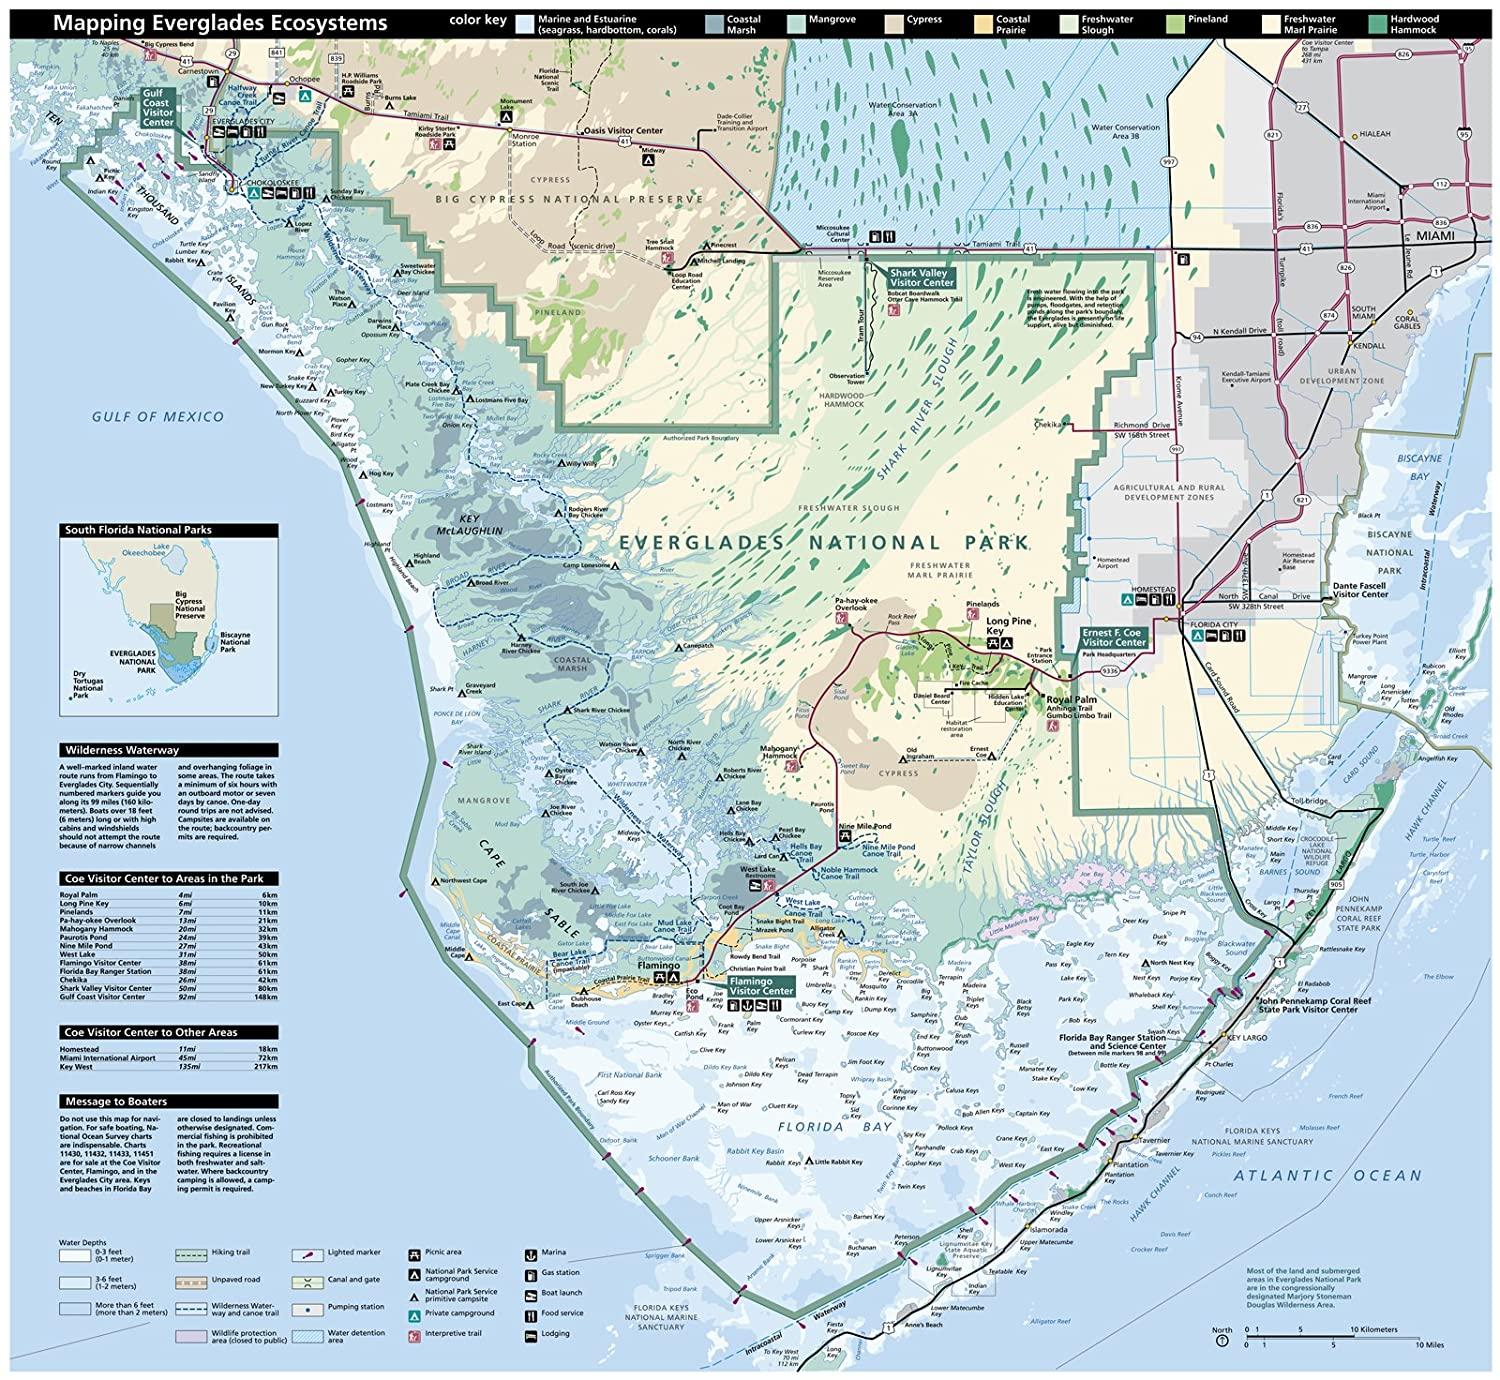 Map Of Florida Bay.Amazon Com Wall Map Of The Everglades National Park In Florida 23